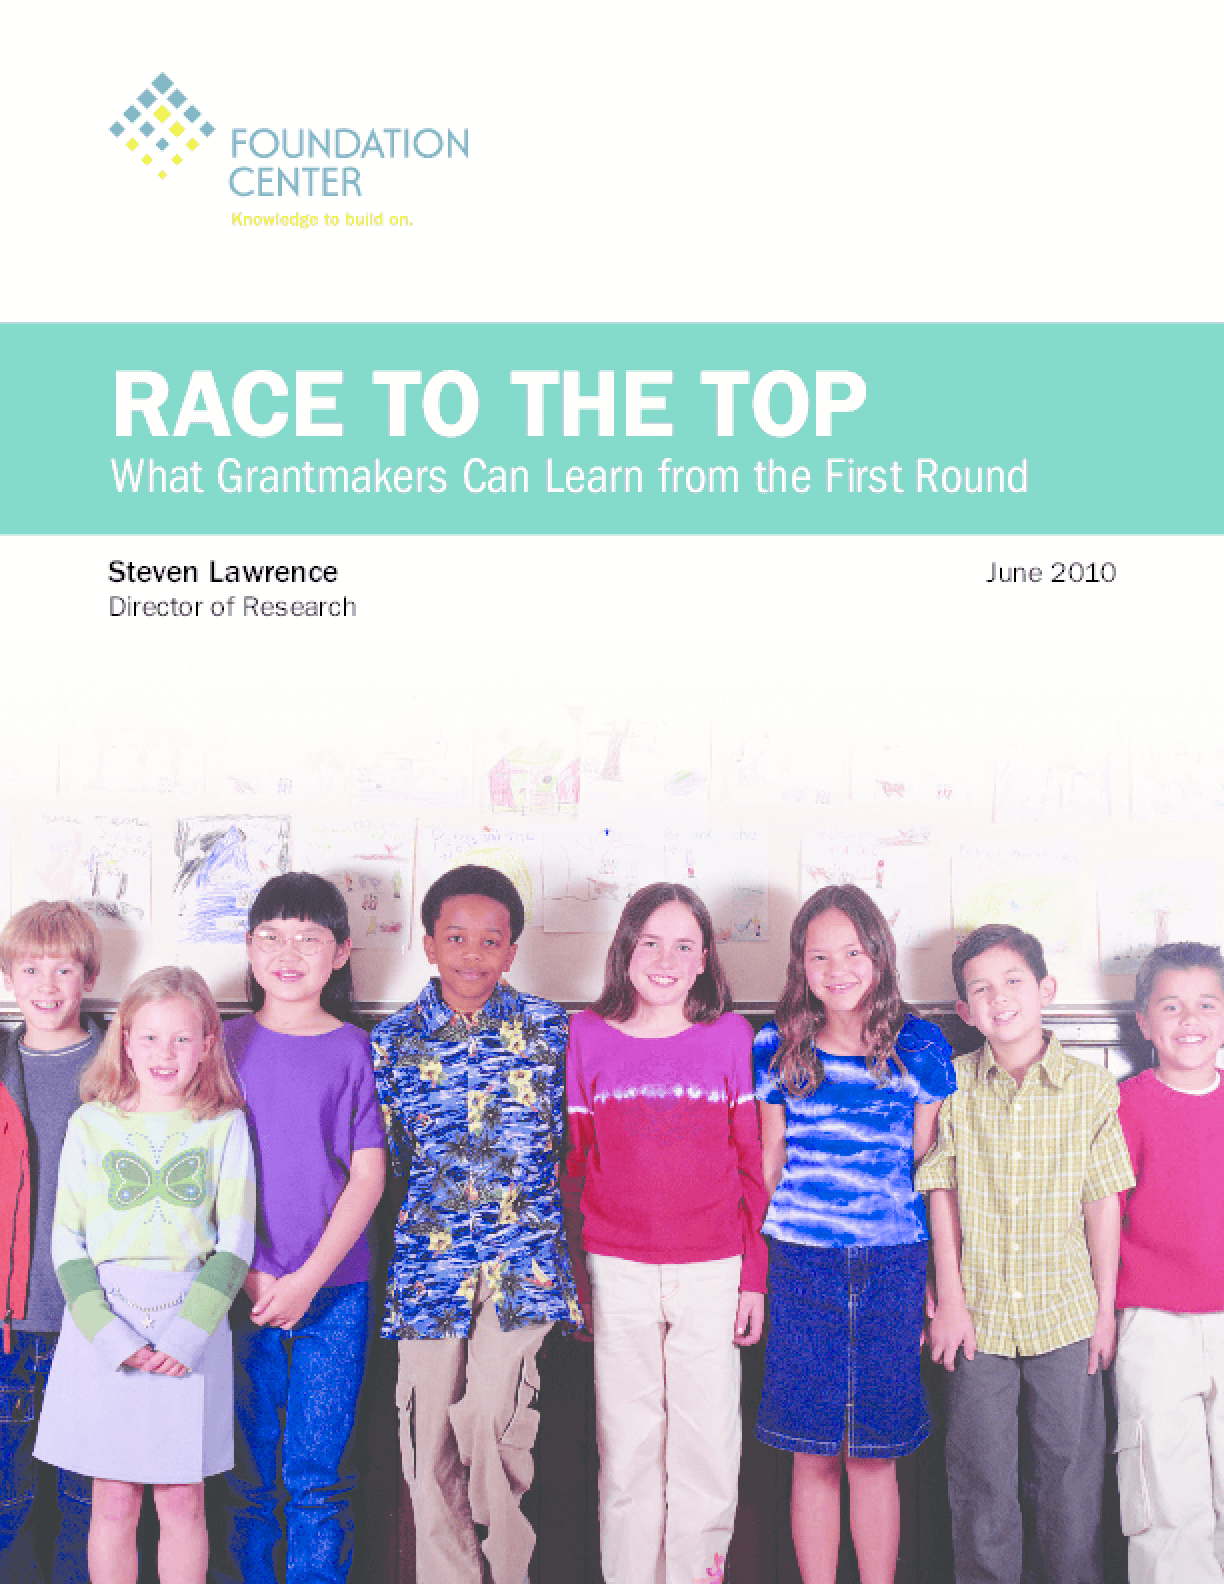 Race to the Top: What Grantmakers Can Learn From the First Round